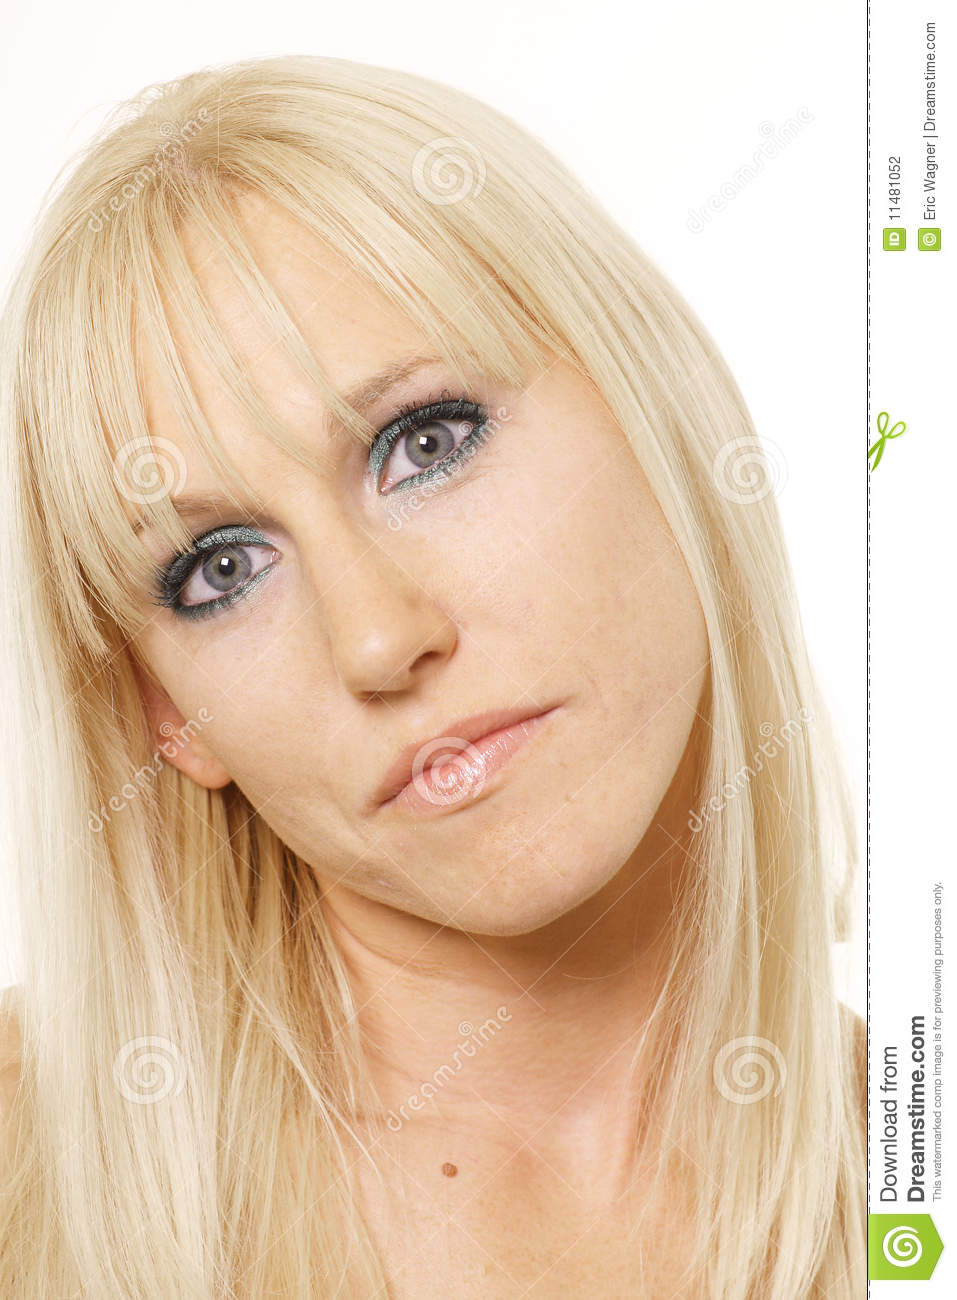 Blonde With Head Tilted Stock Photography - Image: 11481052